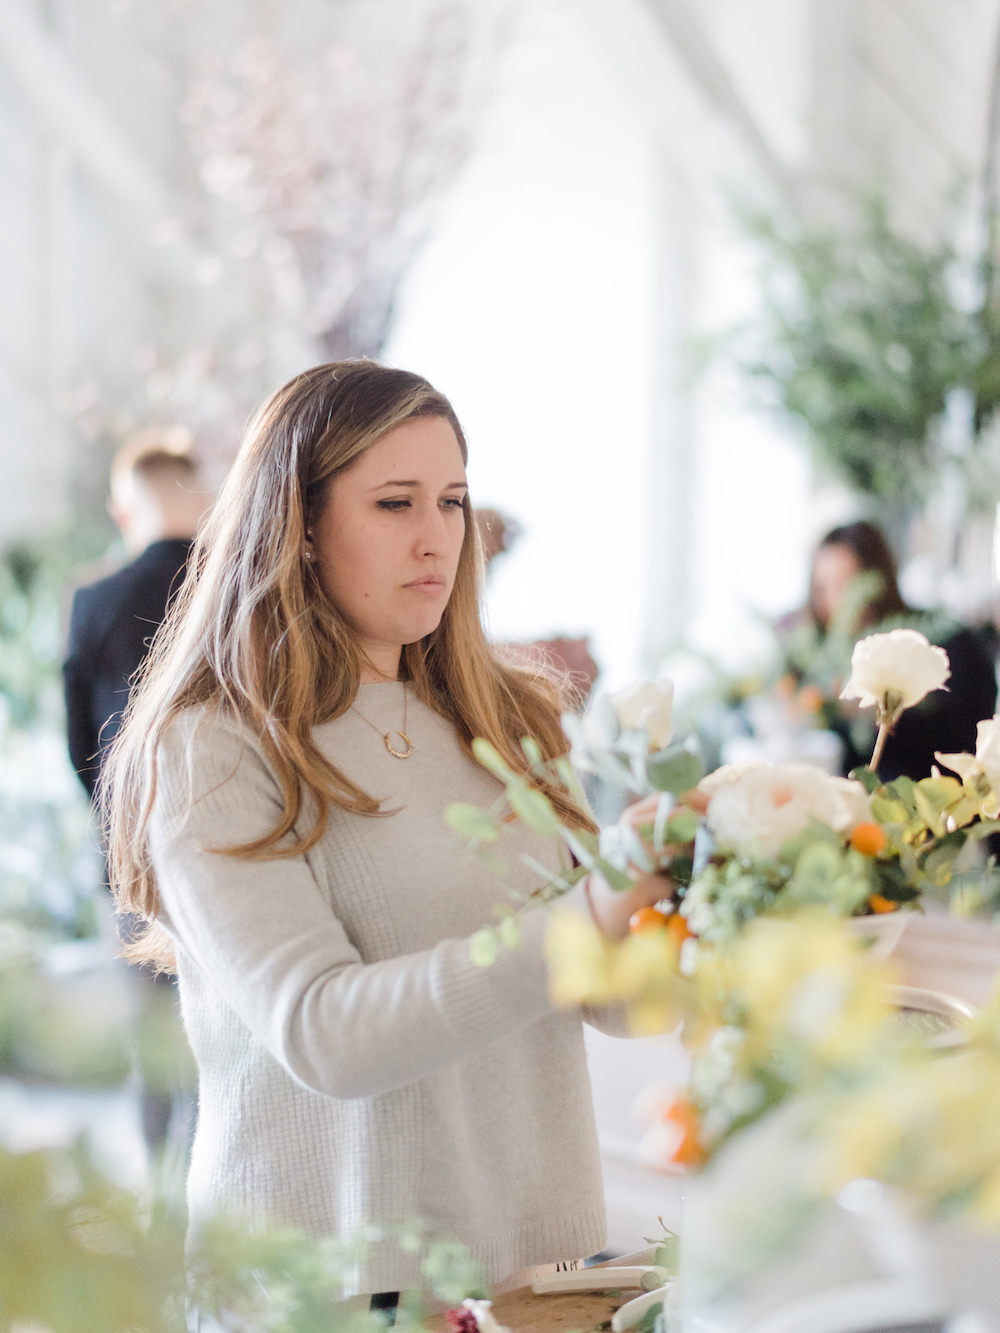 Kate Campbell Luster Floral Design at Sinclair and Moore Workshop, photo by Kristen Honeycutt Photo Co.jpg